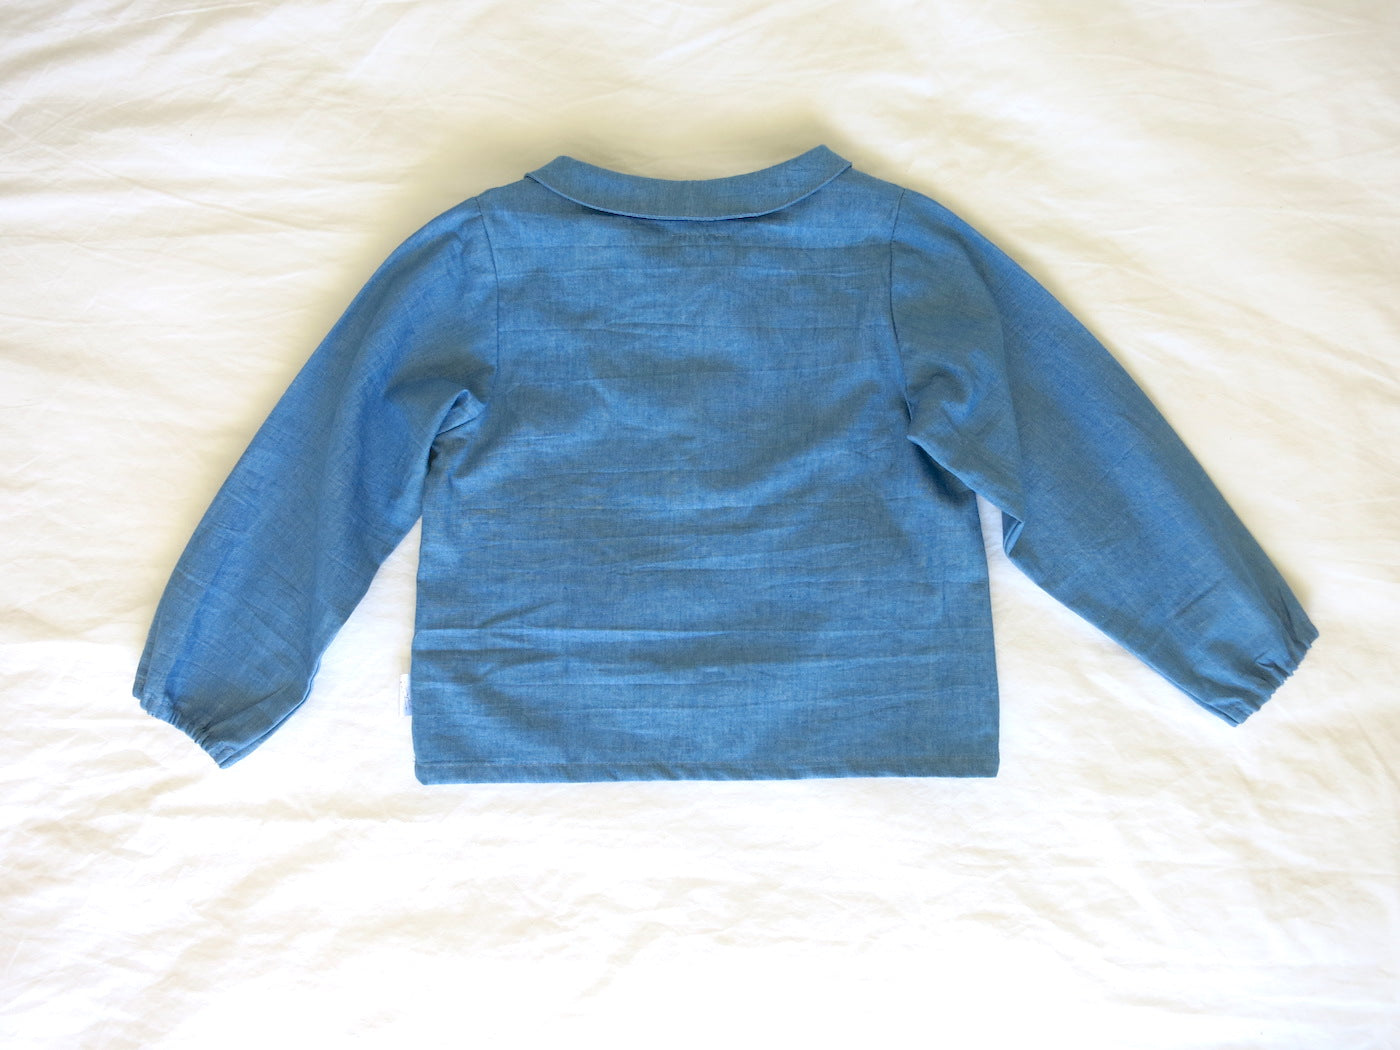 Lunar Blouse - Mid Blue Denim